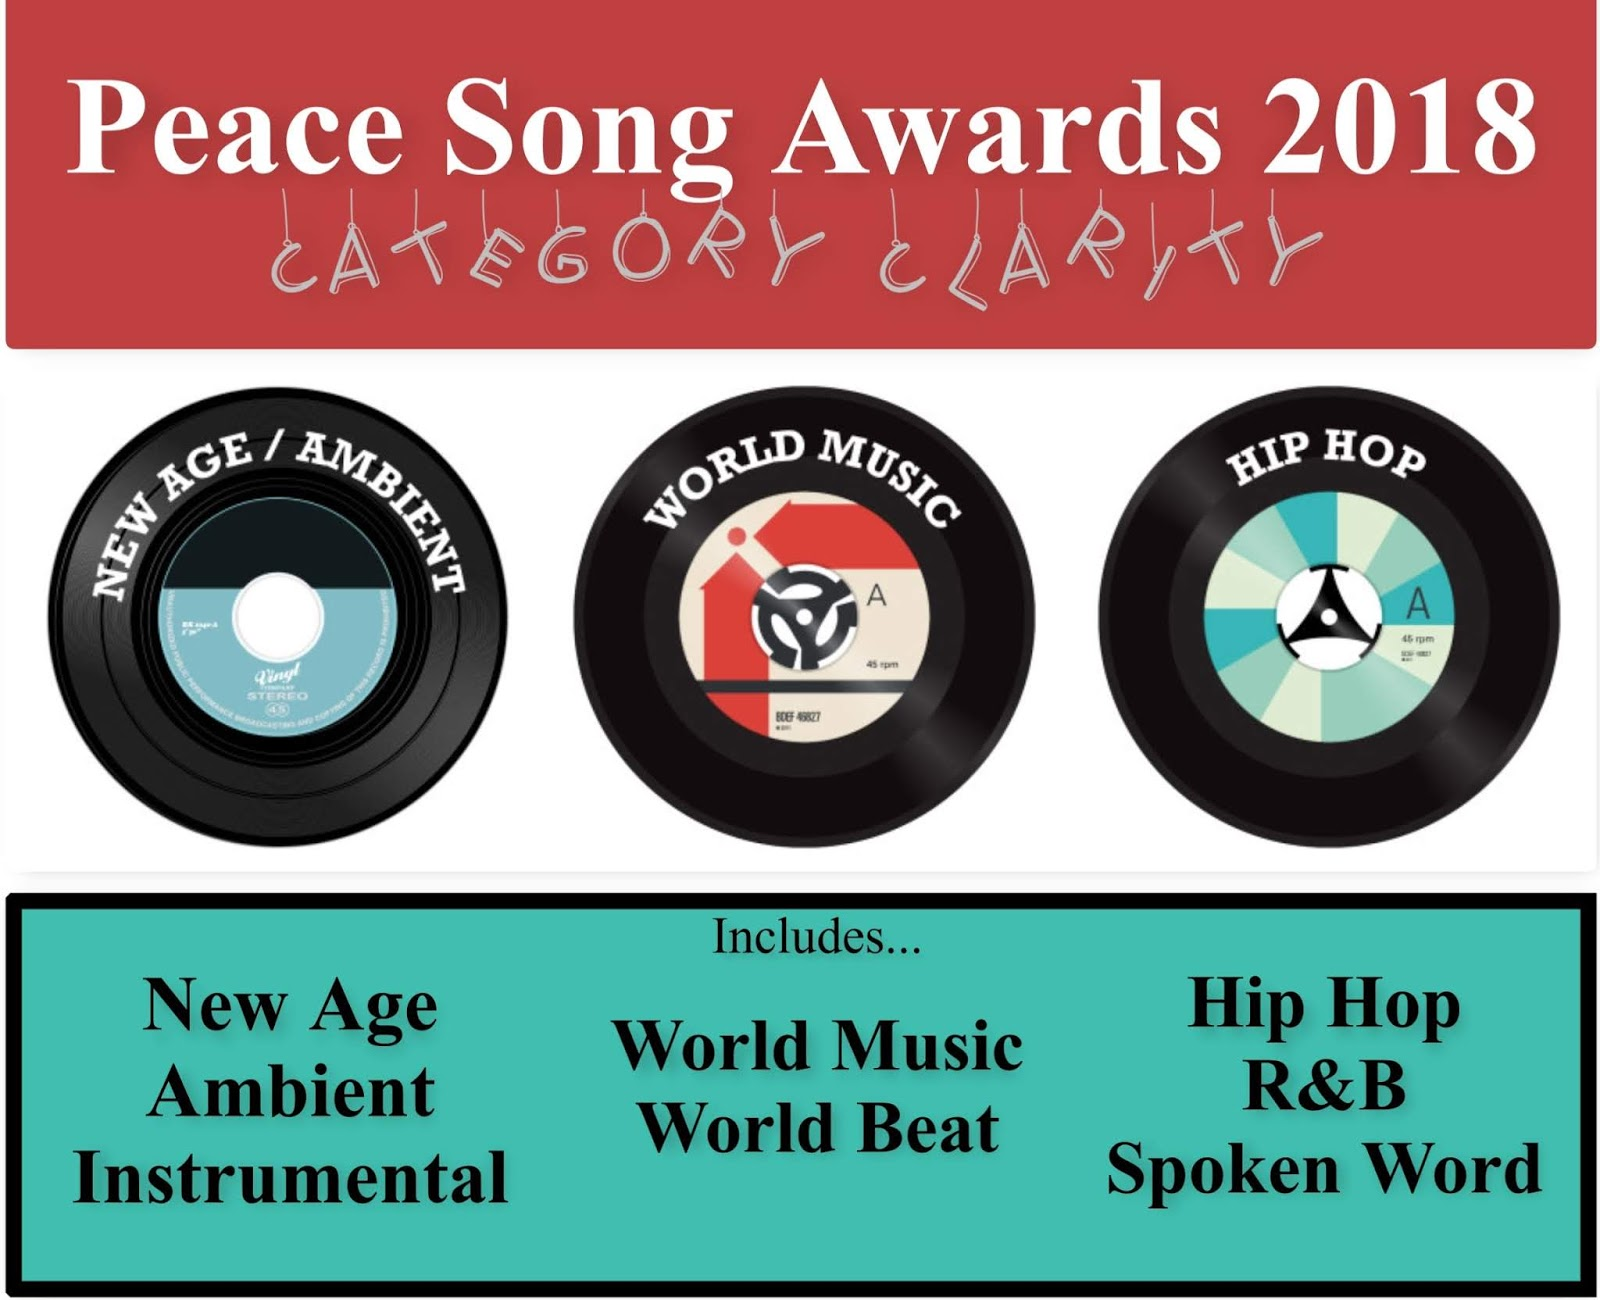 BE DIFFERENTLY : 3rd ANNUAL PEACE SONG AWARDS, JUDGED BY GRAMMY AND